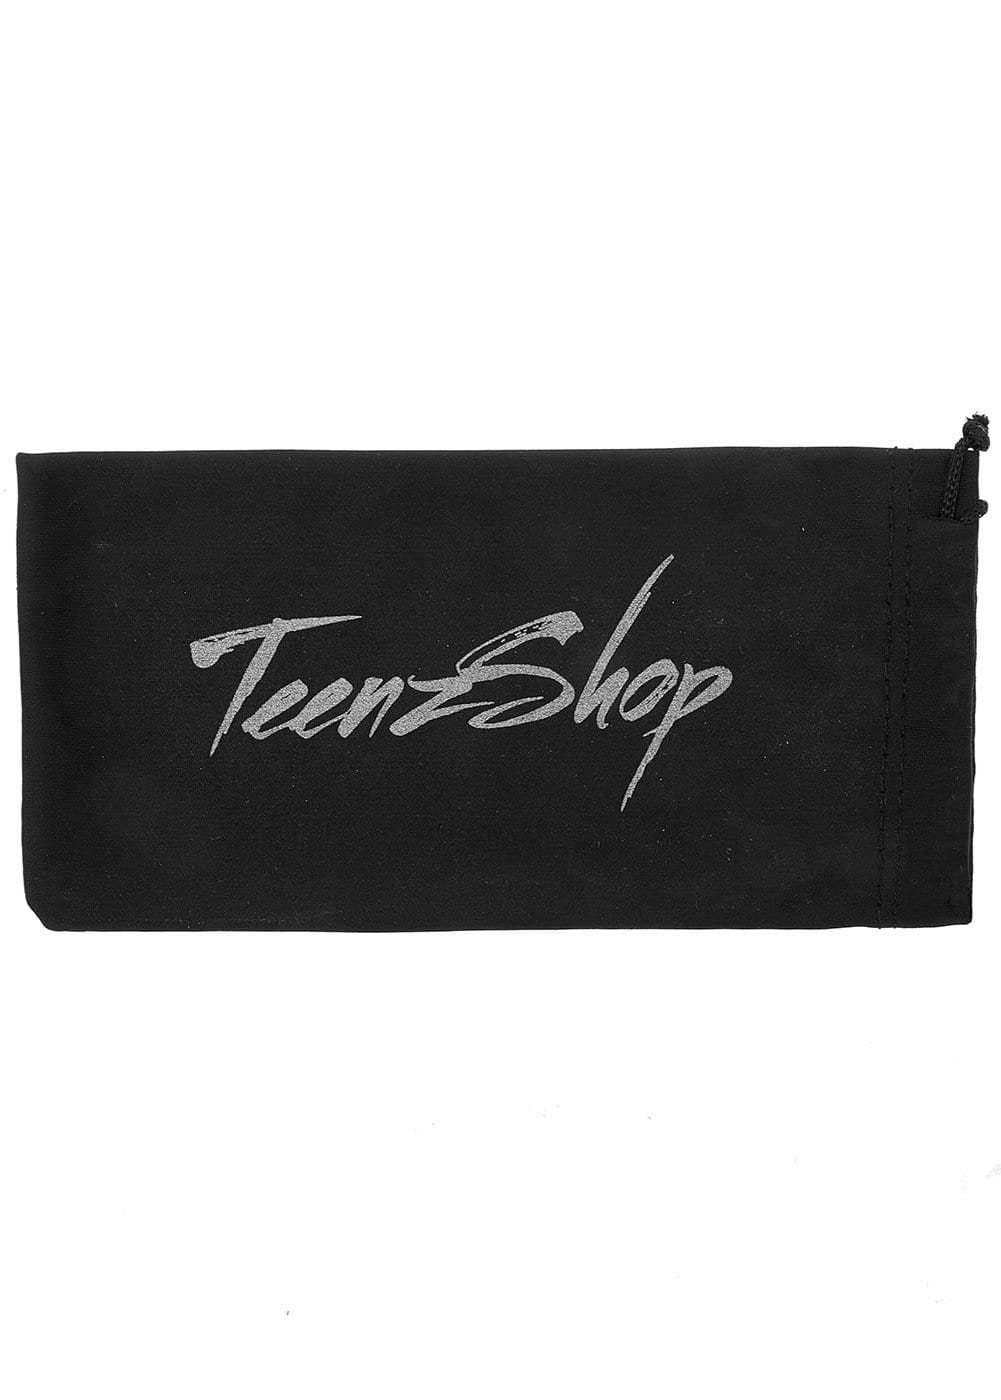 Teenzshop Summer Love Sunglasses